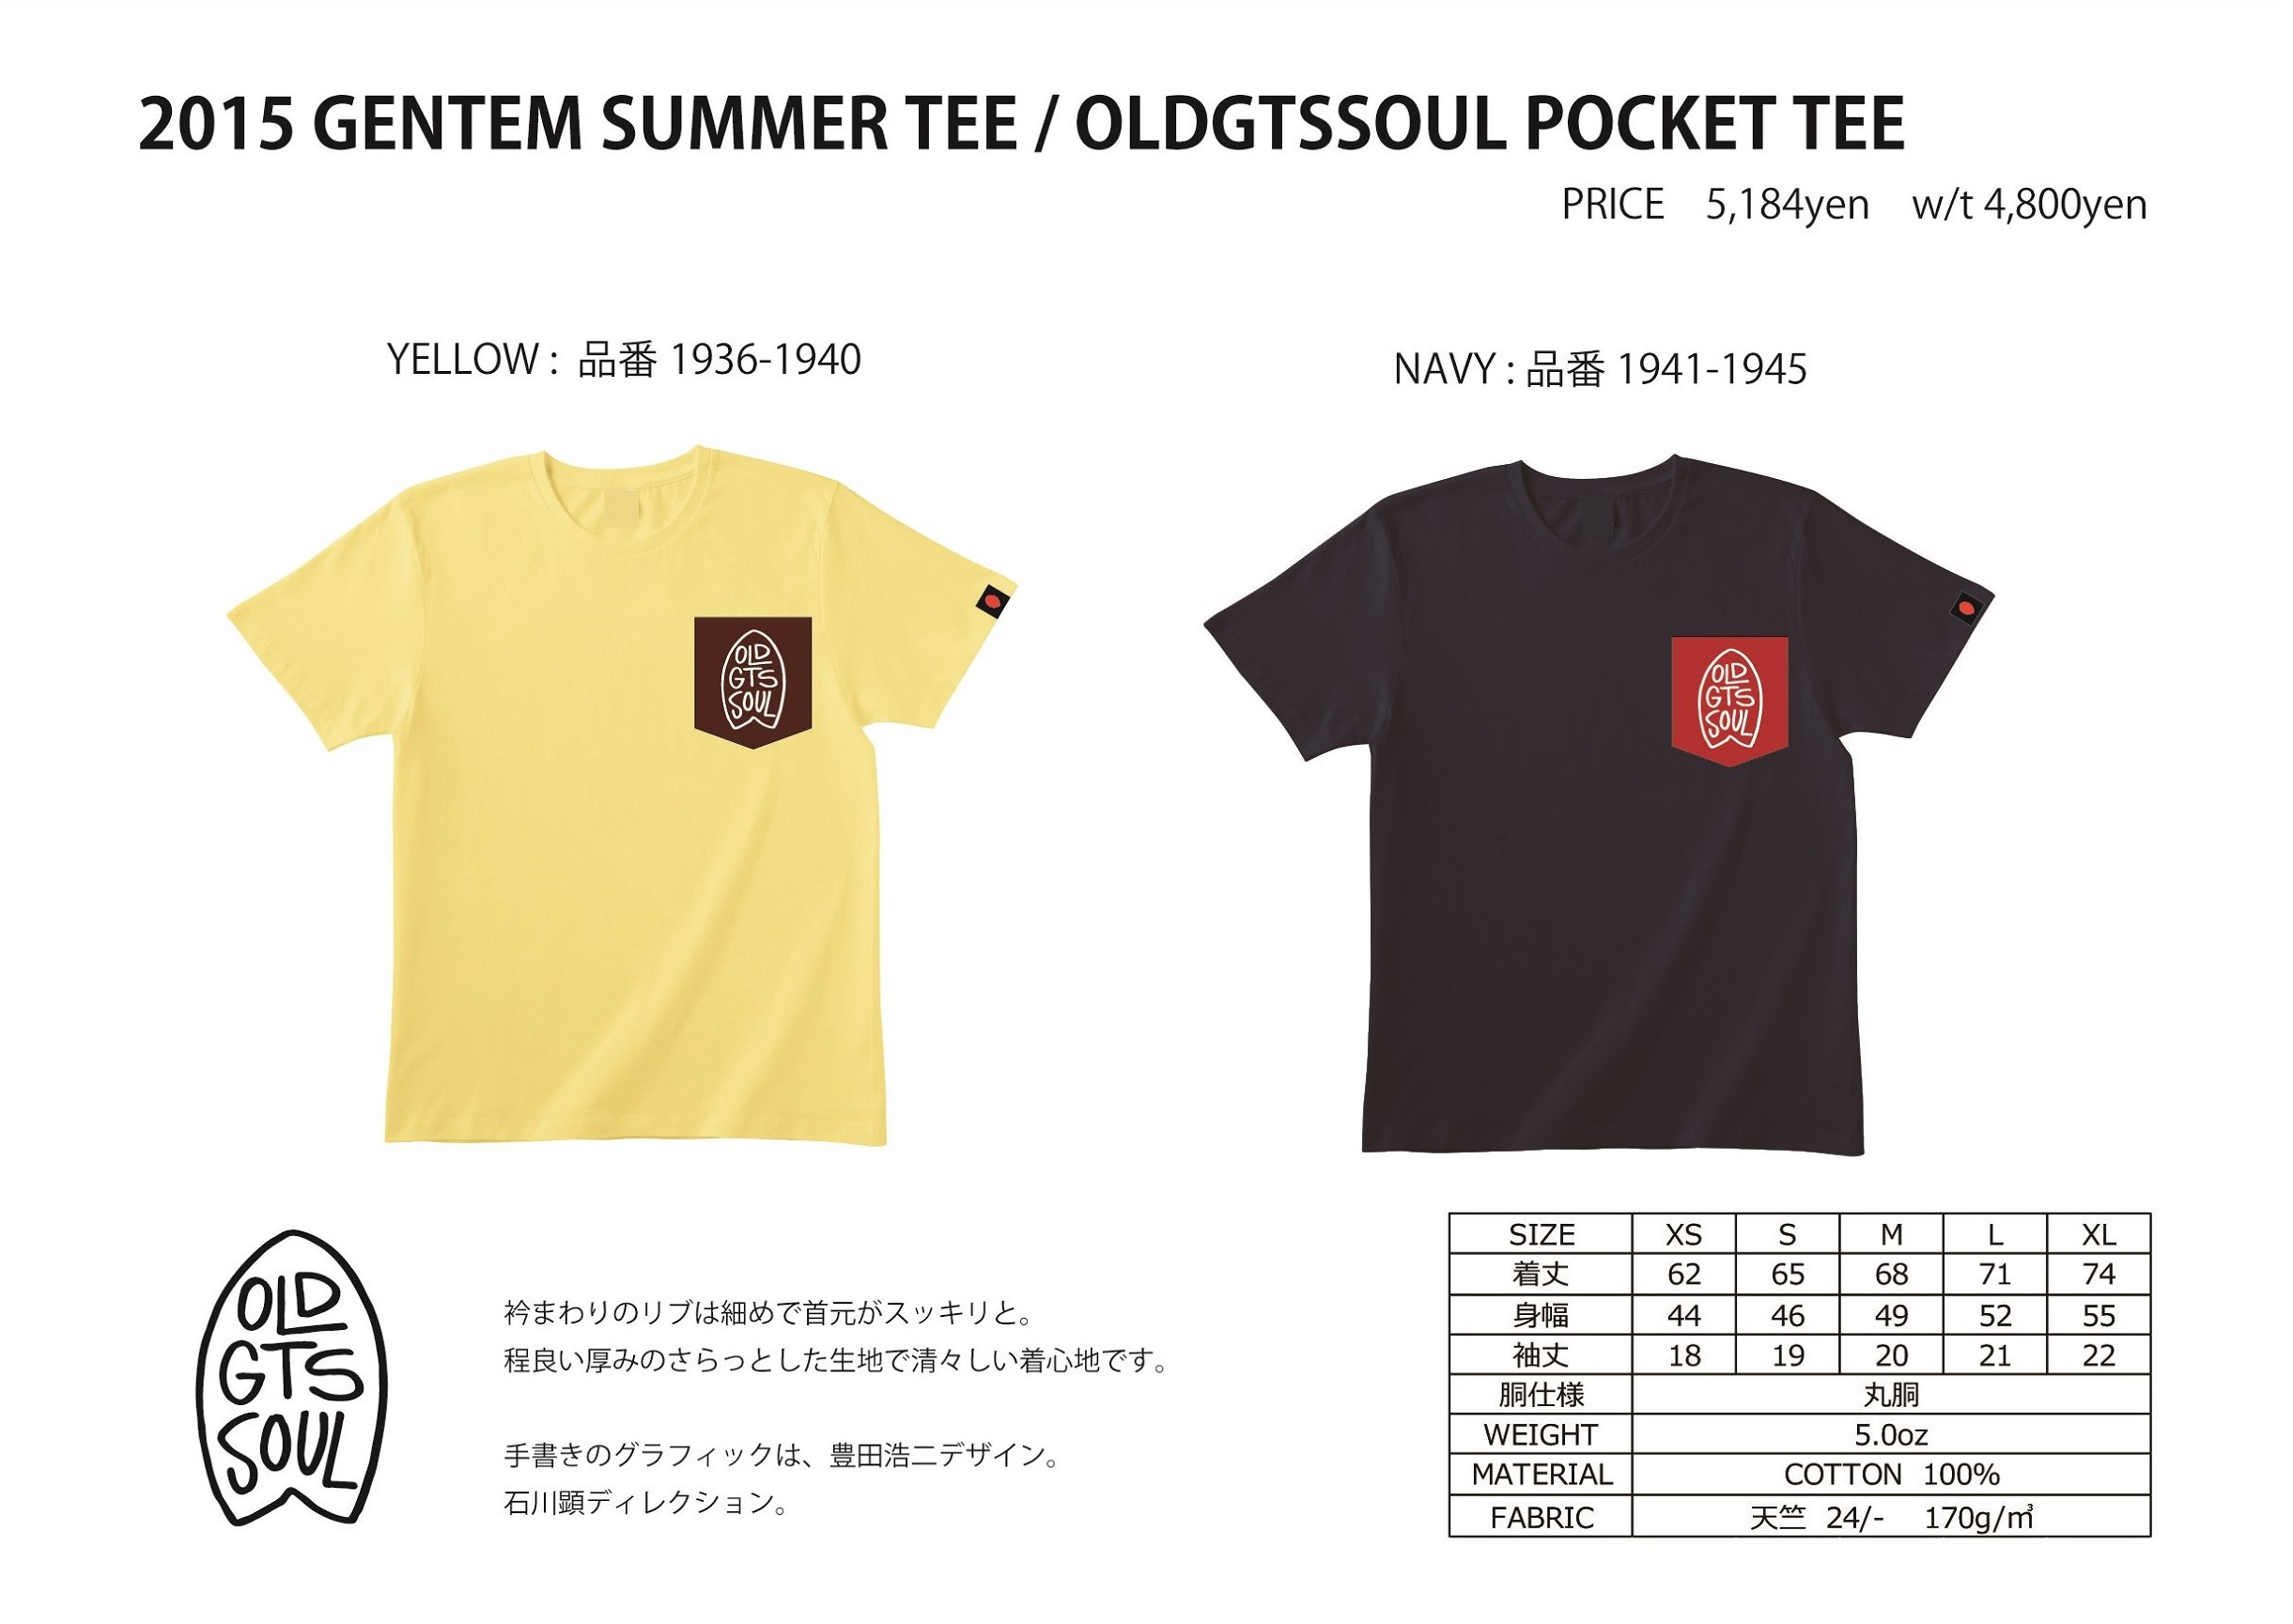 15-16summerTee pocket tee